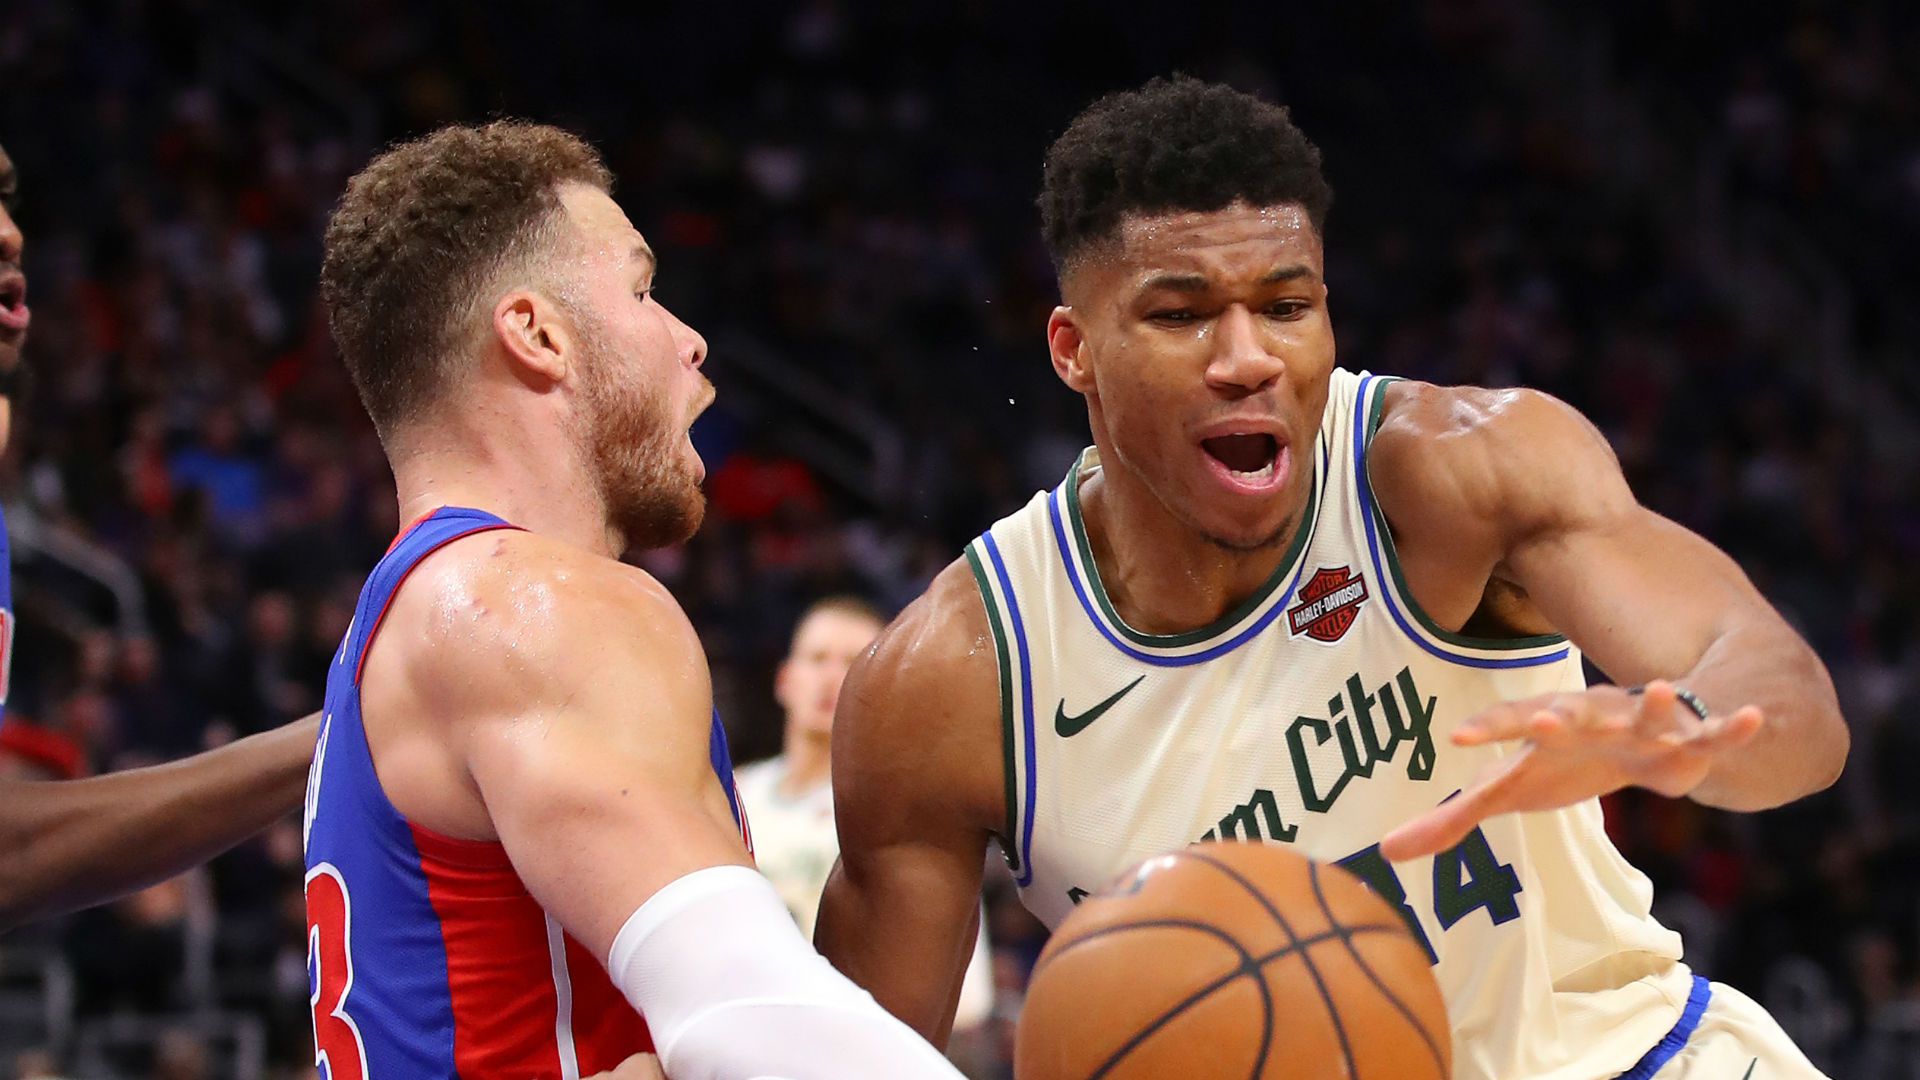 We can fight - Antetokounmpo on fiery Griffin clash as Bucks down Pistons